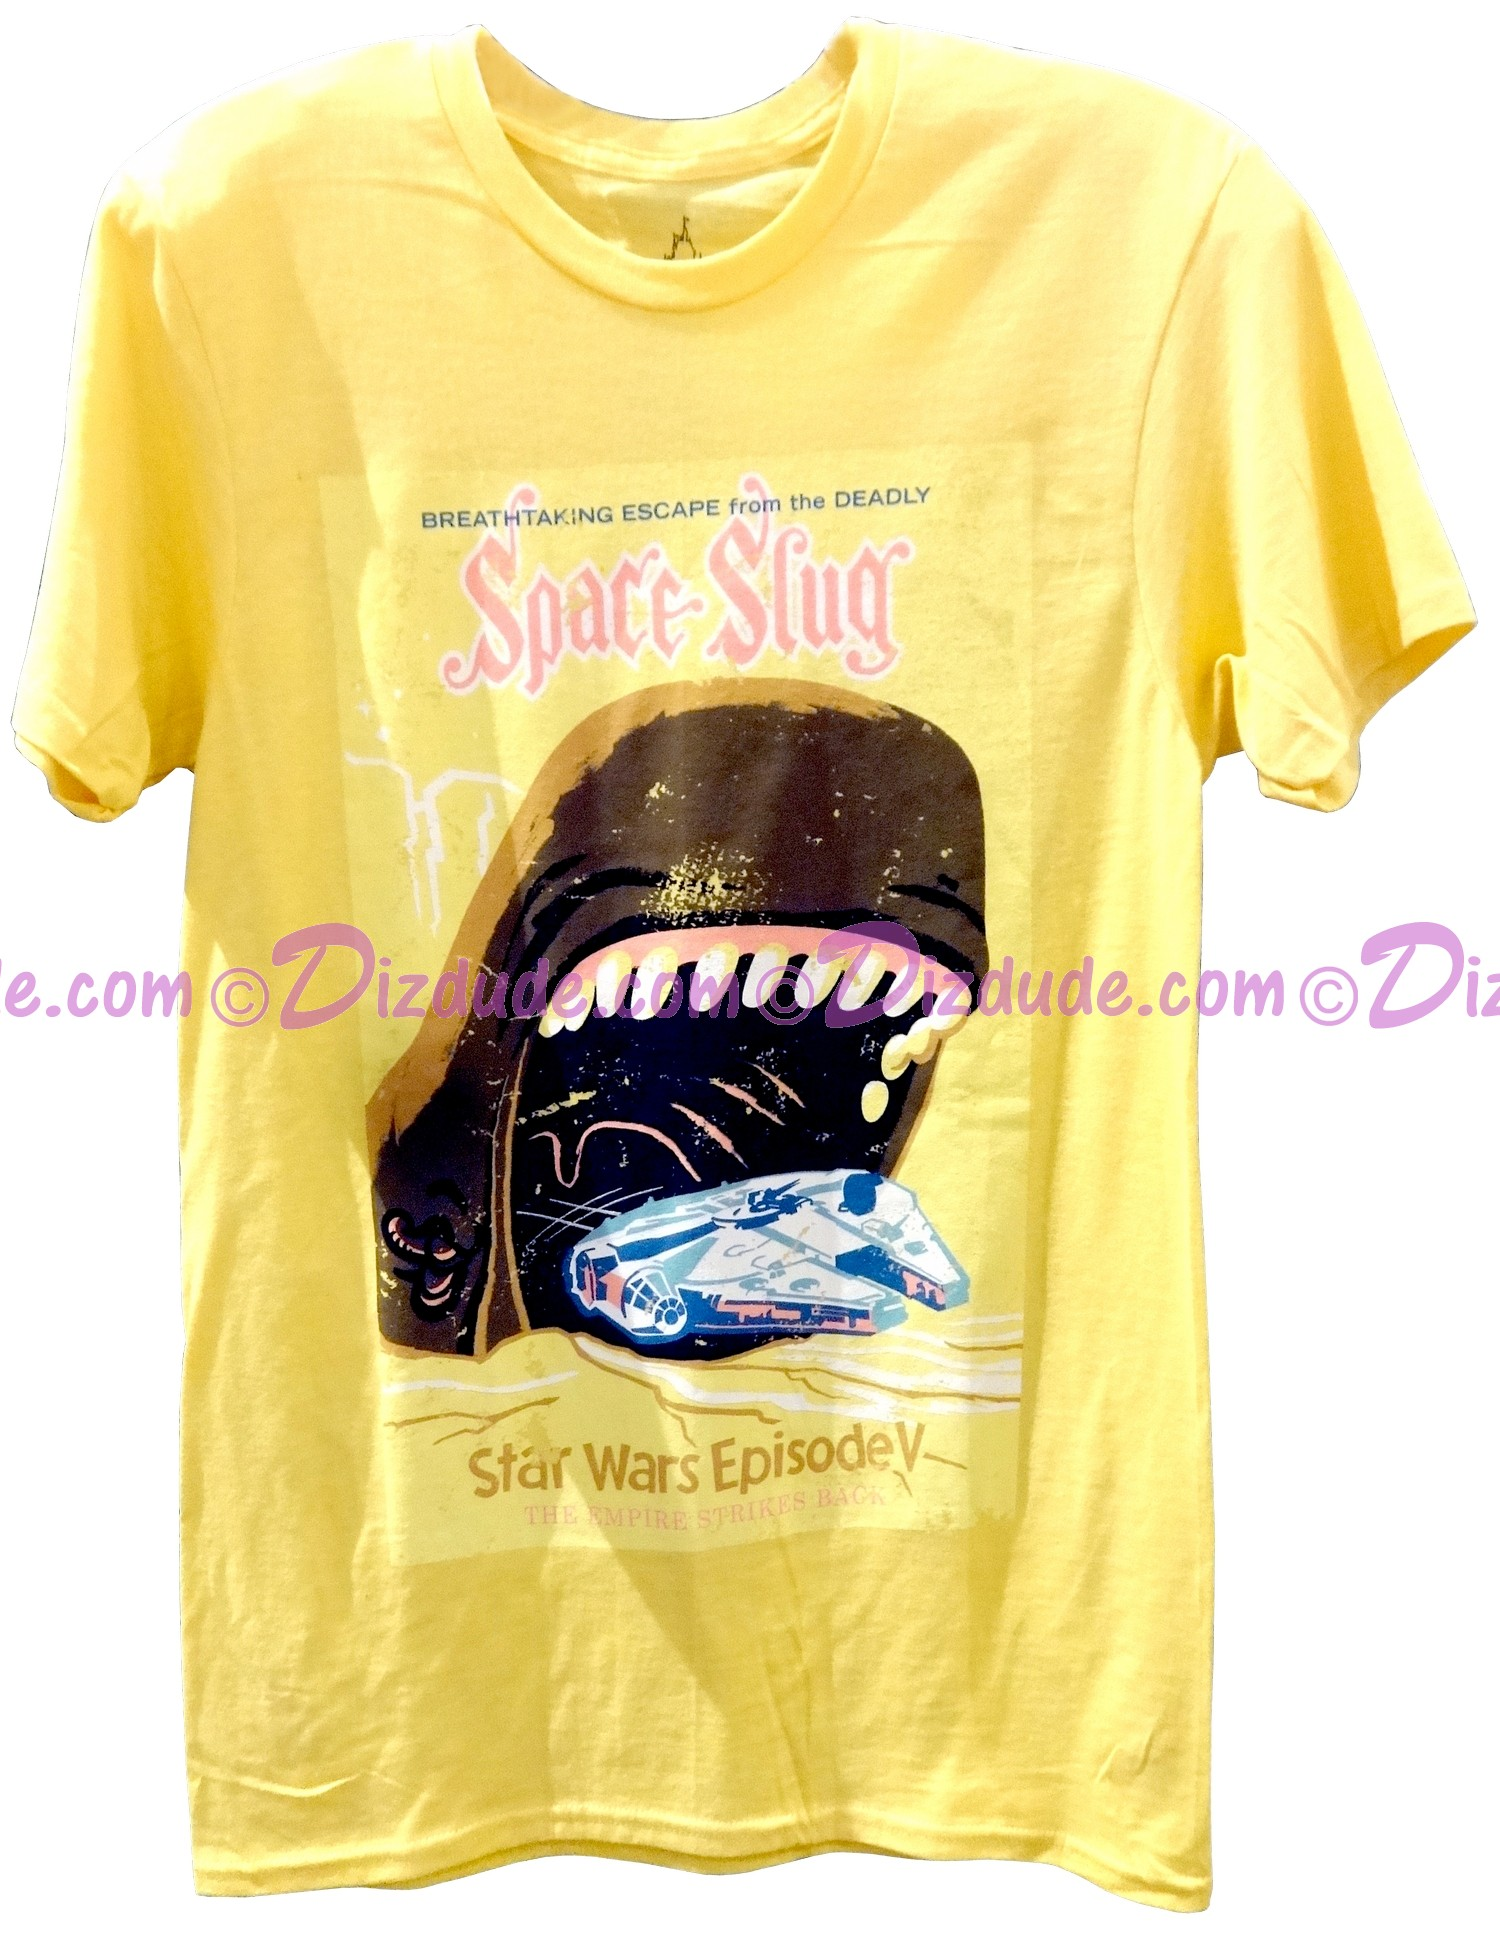 96646ec01876b0 (SOLD OUT) Star Wars Episode V  The Empire Strikes Back - Space Slug Poster  Adult T-Shirt (Tshirt